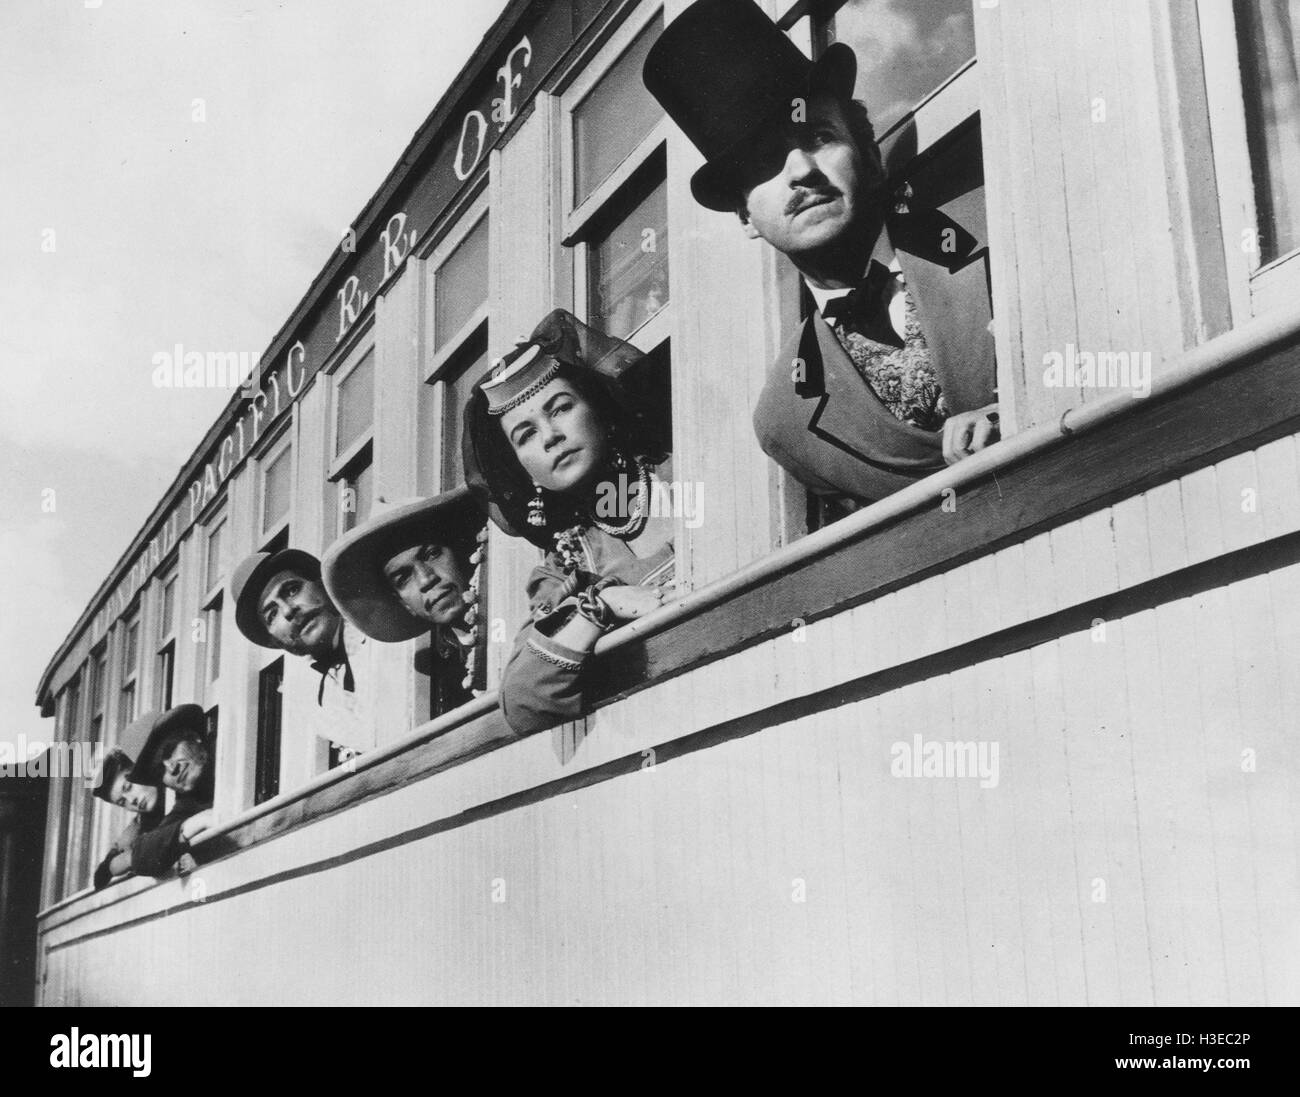 AROUND THE WORLD IN 80 DAYS 1956 United Artists film with from right: David Niven Shirley MacLaine, Cantinflas - Stock Image